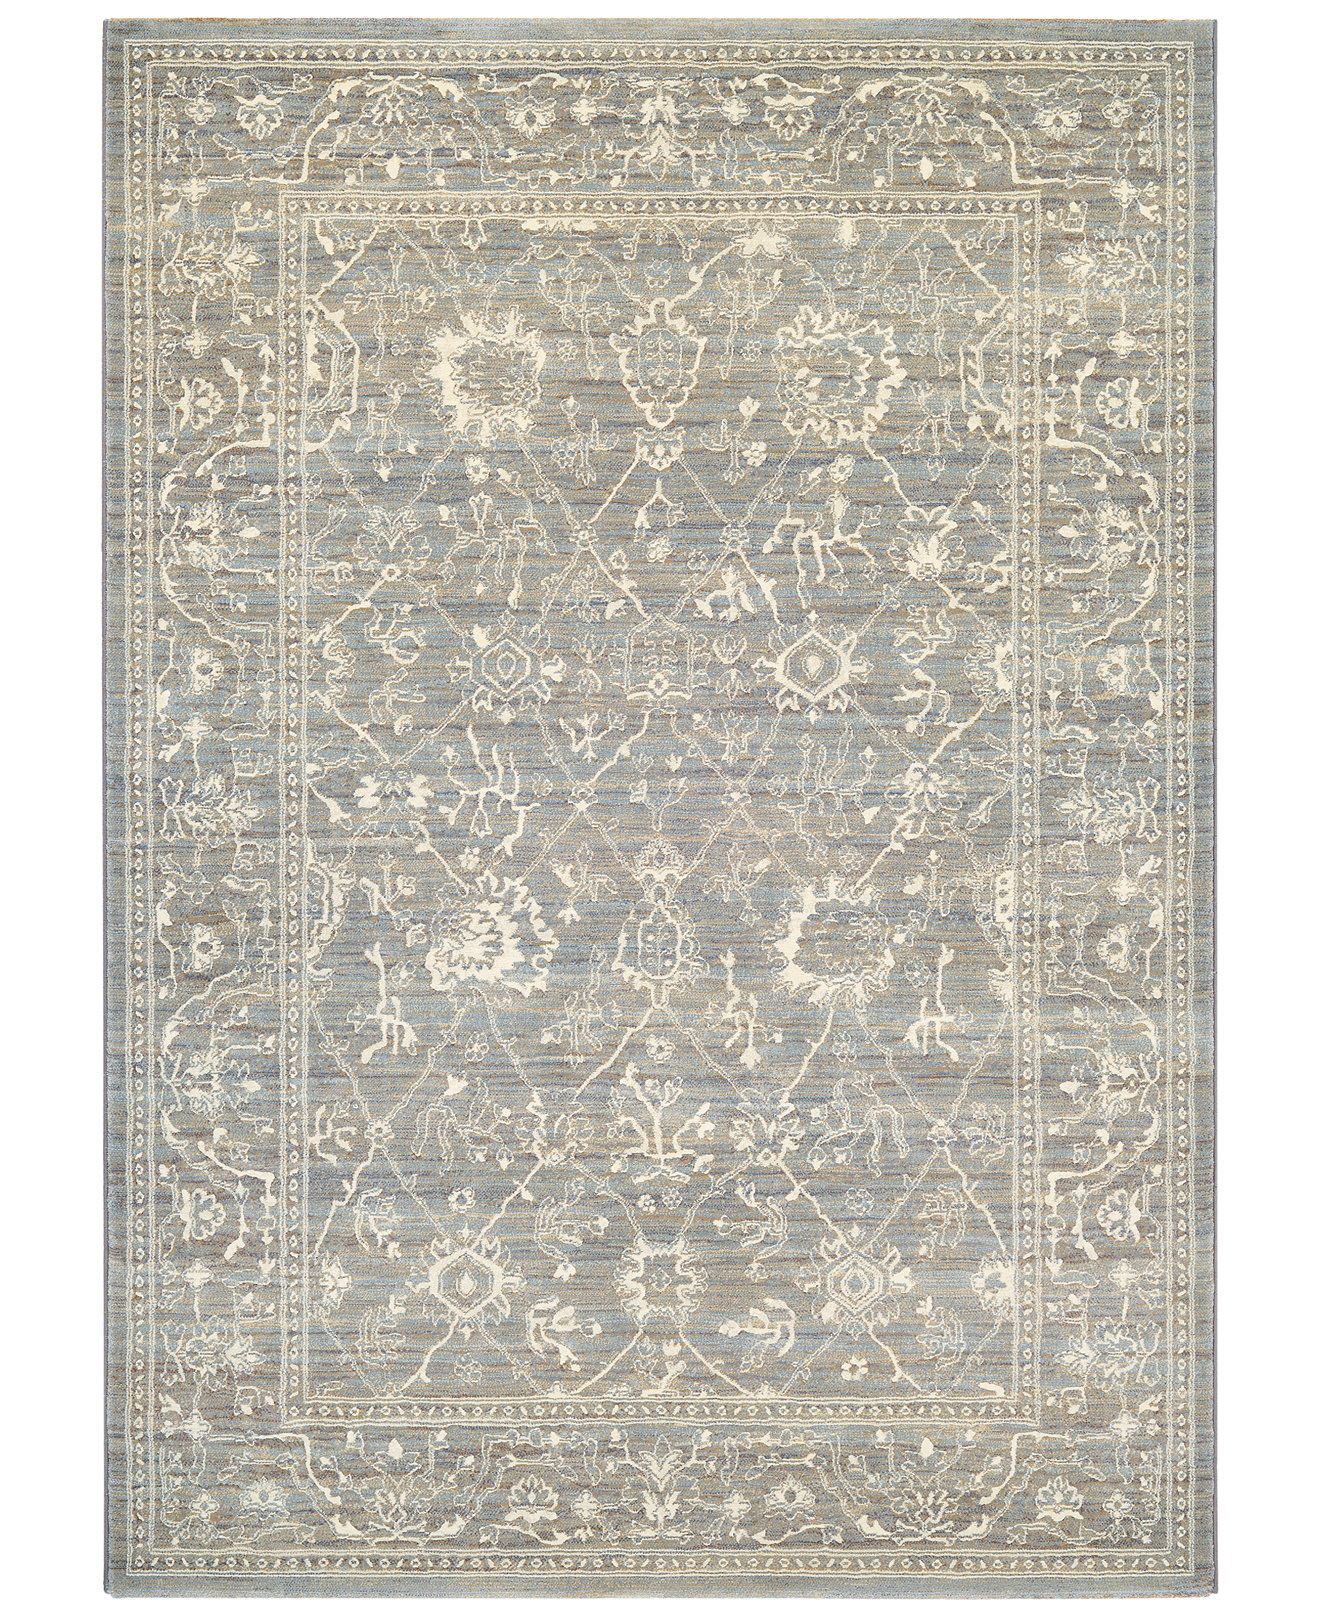 Couristan Mckinley Persian Arabesque Charcoal Ivory 7 10 Area Rugs Rugs Handmade Area Rugs